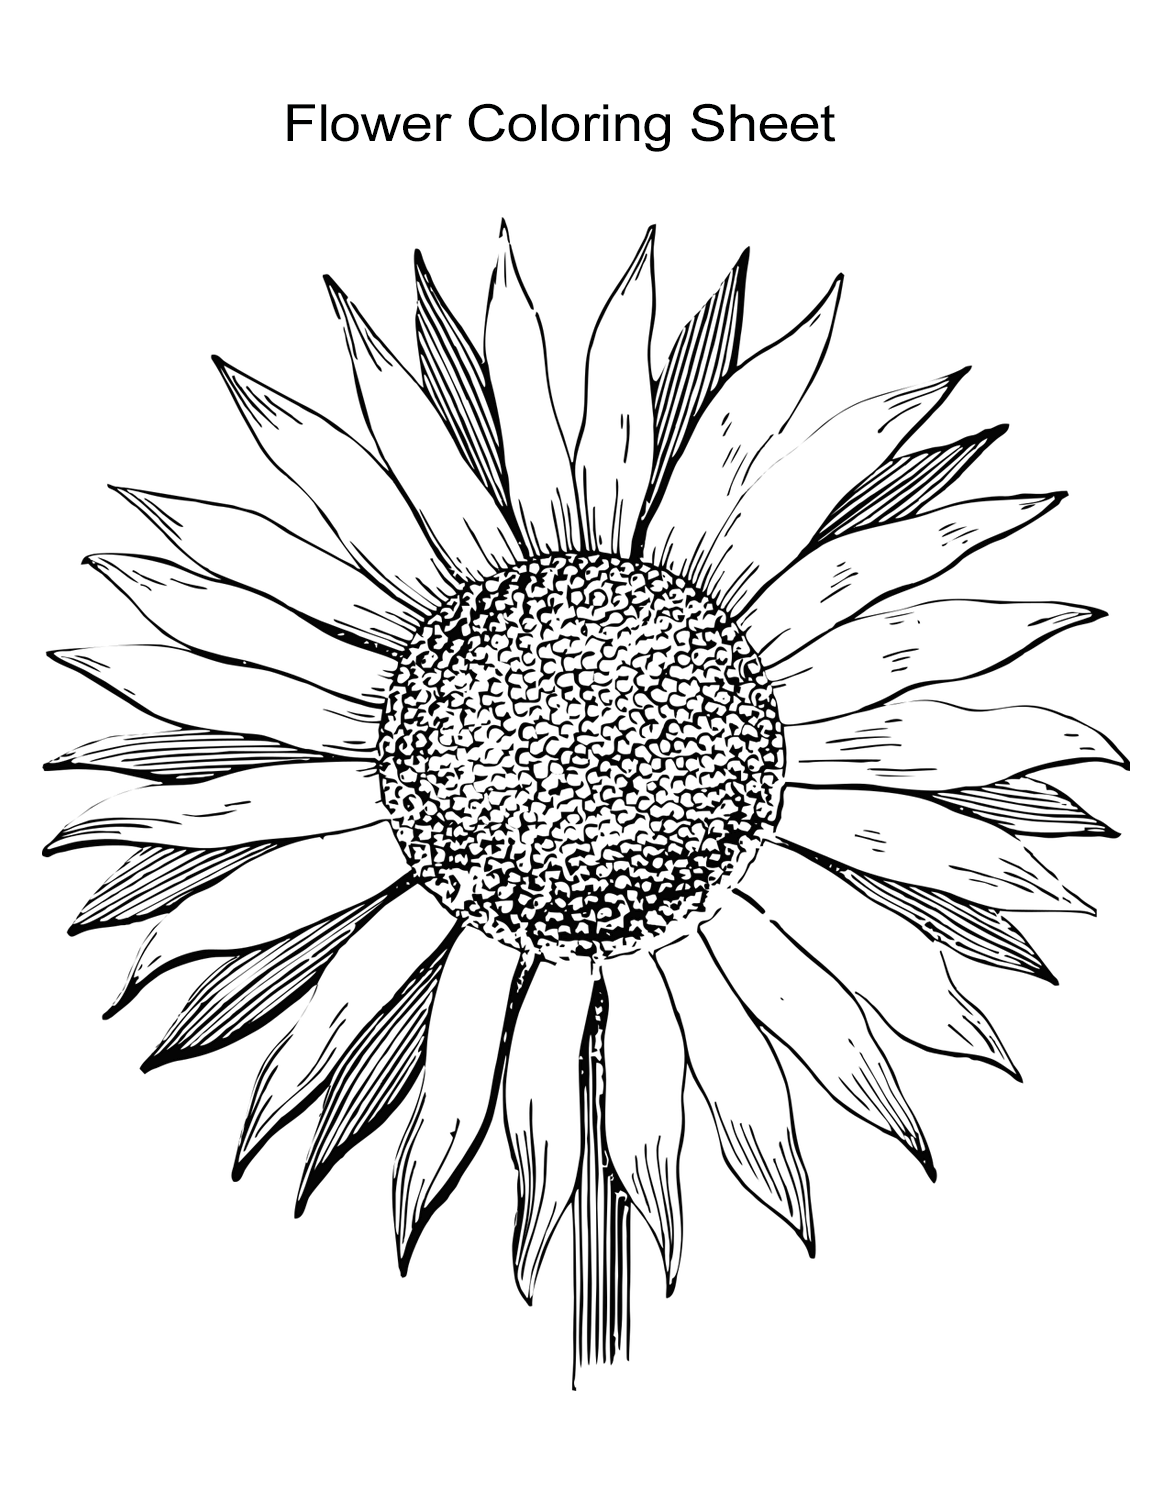 colouring pictures of plants 10 flower coloring sheets for girls and boys all esl colouring of plants pictures